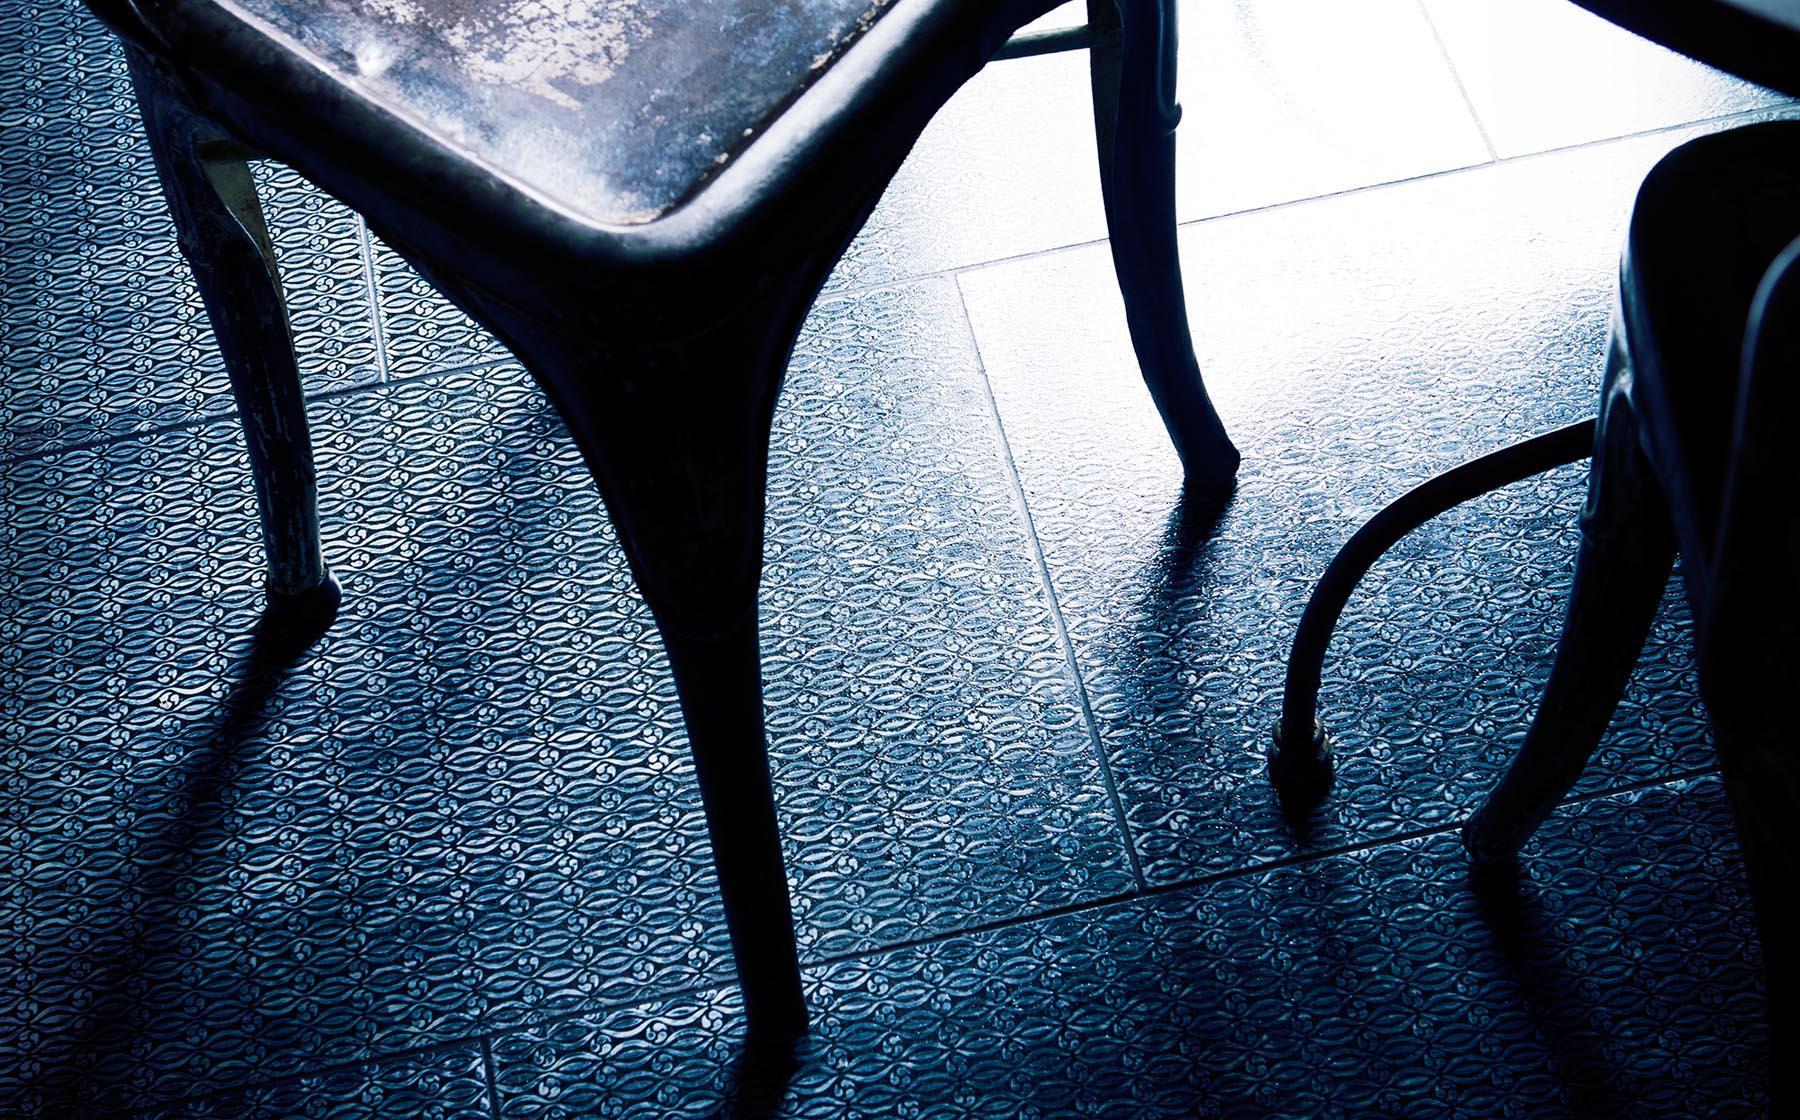 Graham Atkins-Hughes Black Chair on Tiled Floor